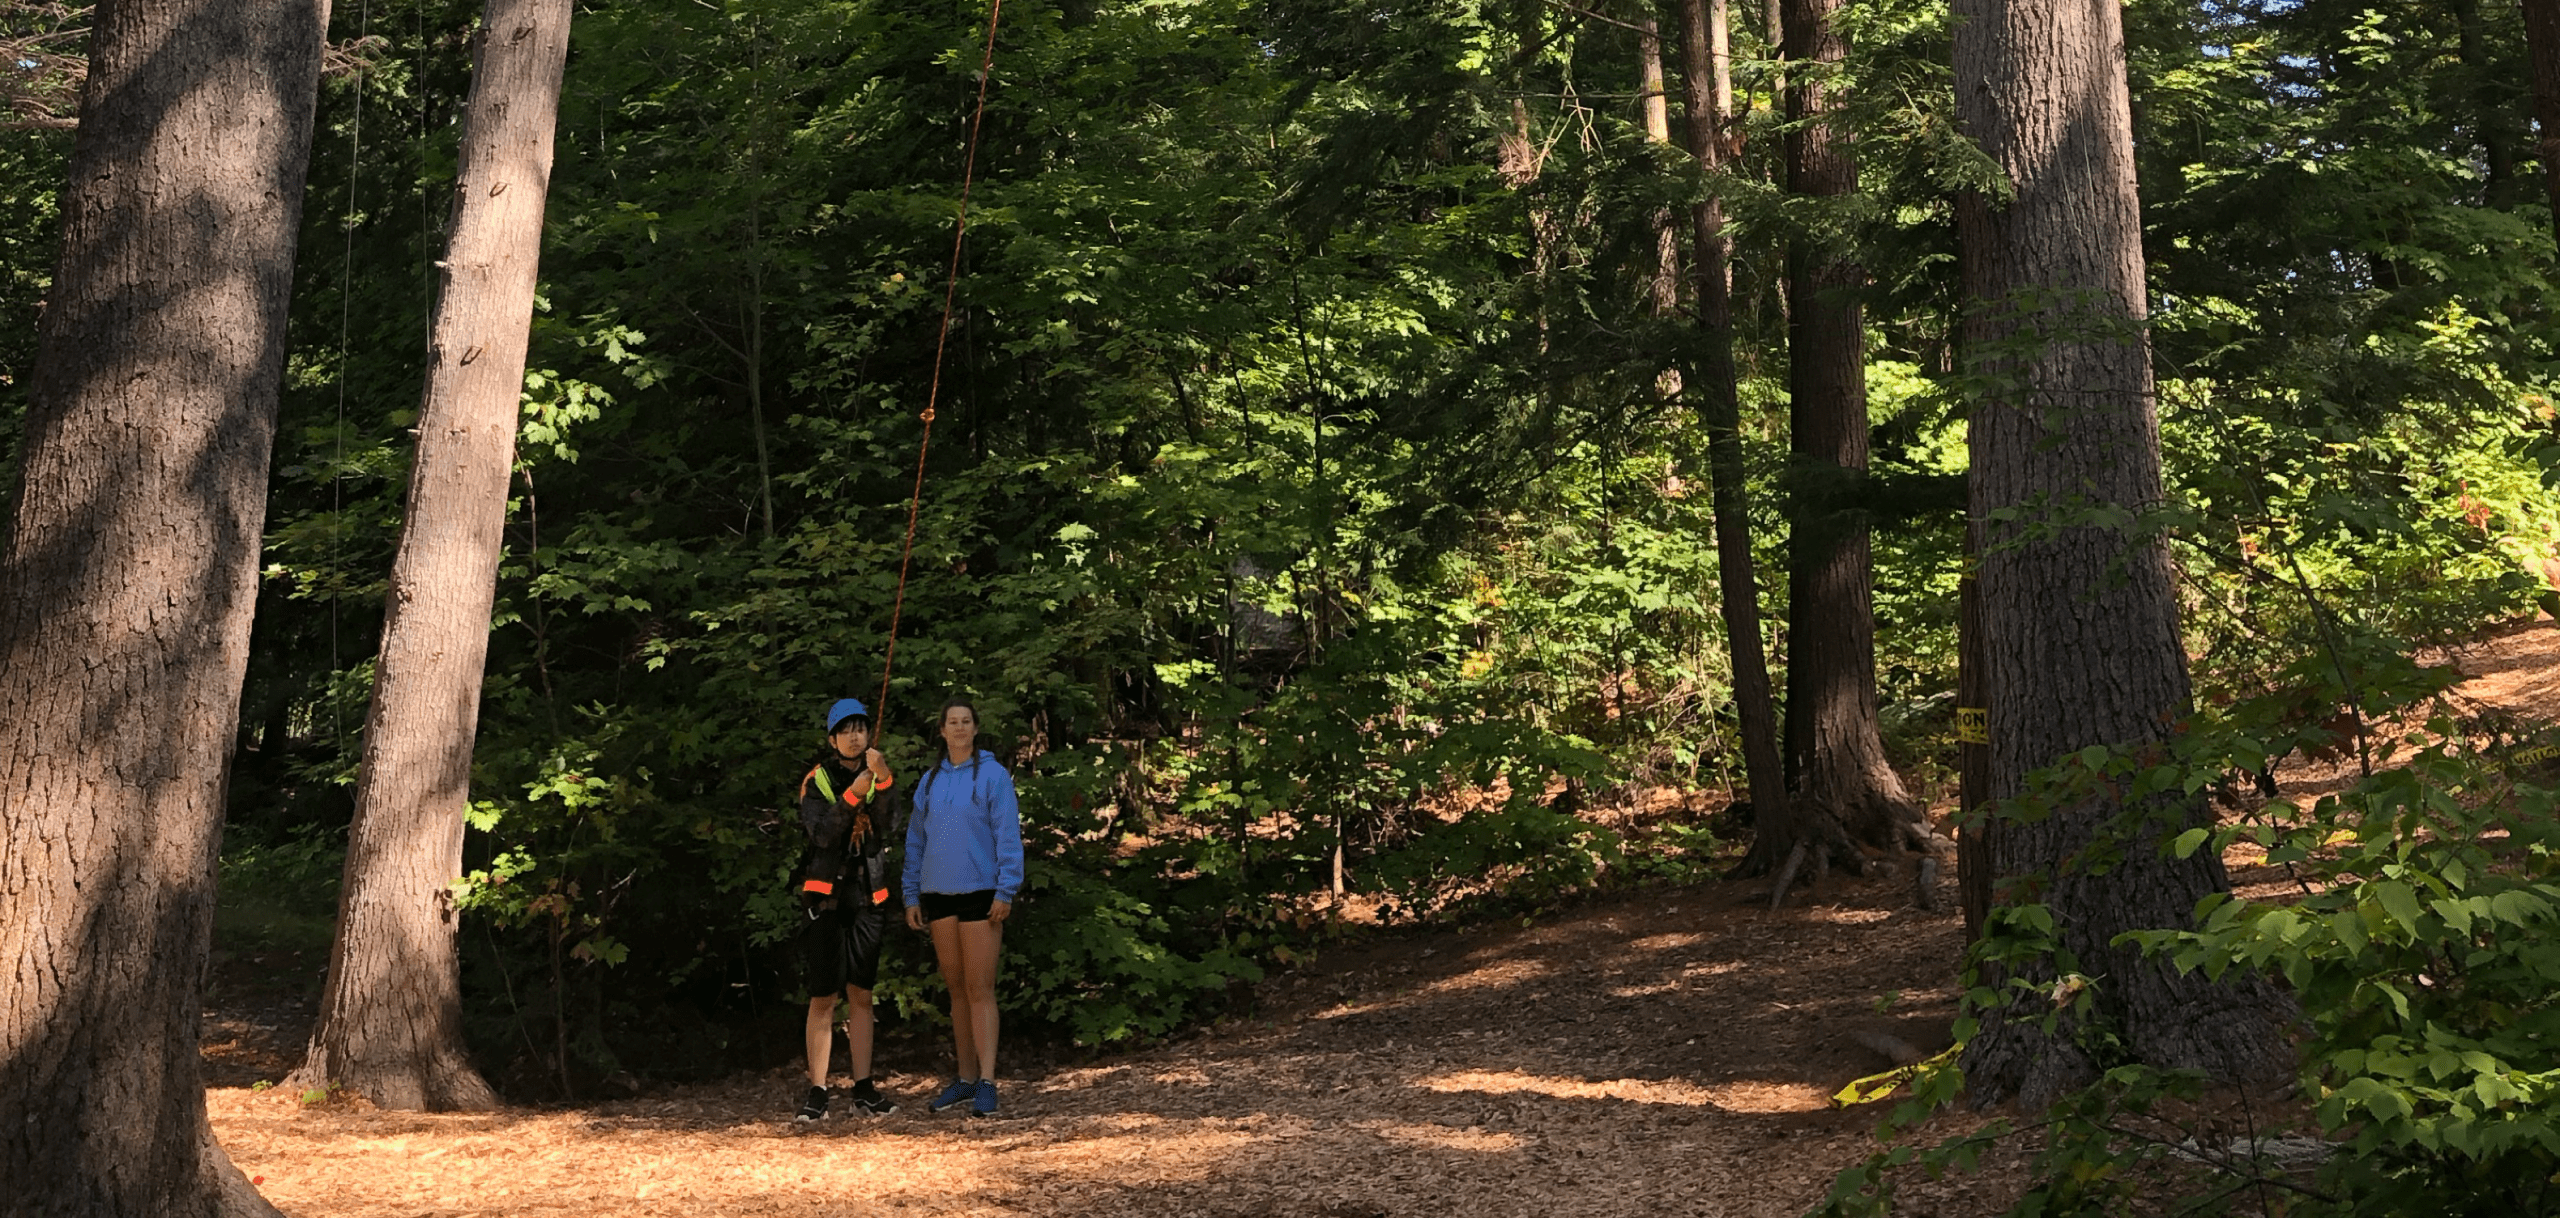 Campers in the wilderness at Camp Tamarack